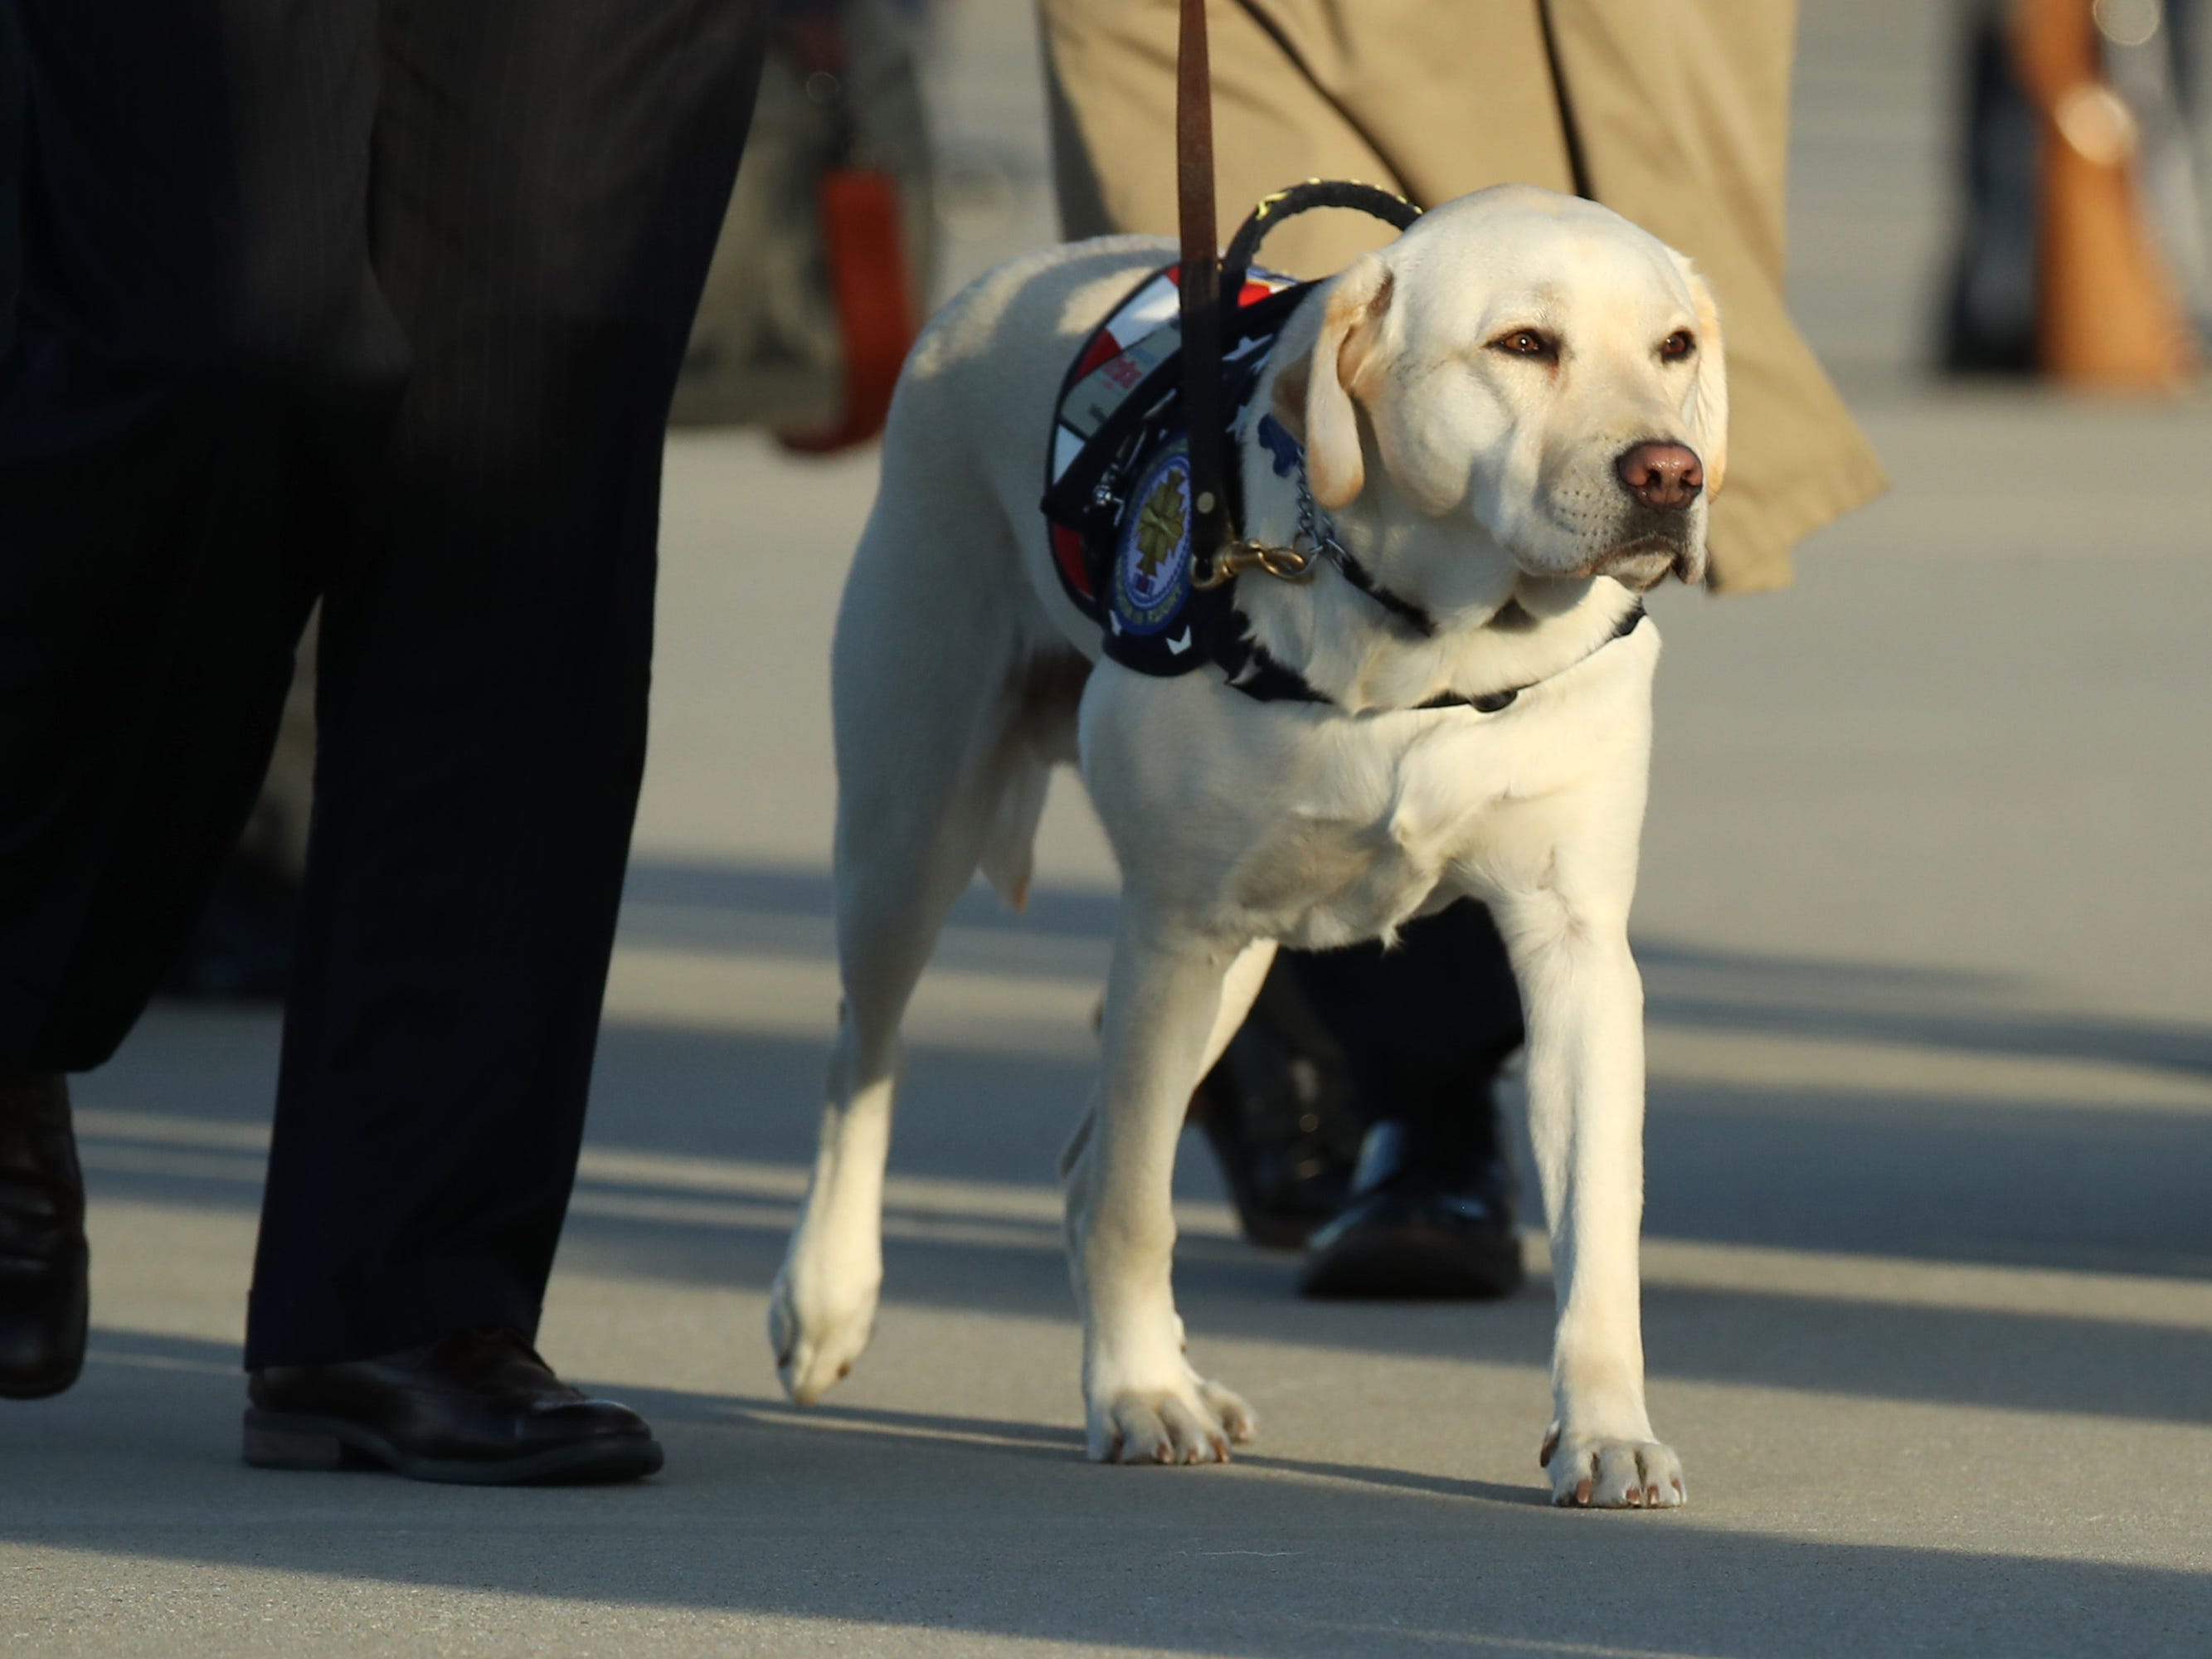 JOINT BASE ANDREWS, MARYLAND - DECEMBER 03: Sully, the yellow Labrador retriever service dog of former President George H.W. Bush walks thorugh Joint Base Andrews after the arrival of U.S. Air Force 747, being called 'Special Mission 41' carrying the casket of the remains of former U.S. President George H.W. Bush before heading to the U.S Capitol on December 3, 2018 in Joint Base Andrews, Maryland. A state funeral for former U.S. President Bush will be held in Washington over the next three days, beginning with him lying in state in the Rotunda of the U.S. Capitol until Wednesday morning. (Photo by Mark Wilson/Getty Images) ORG XMIT: 775266032 ORIG FILE ID: 1068060304